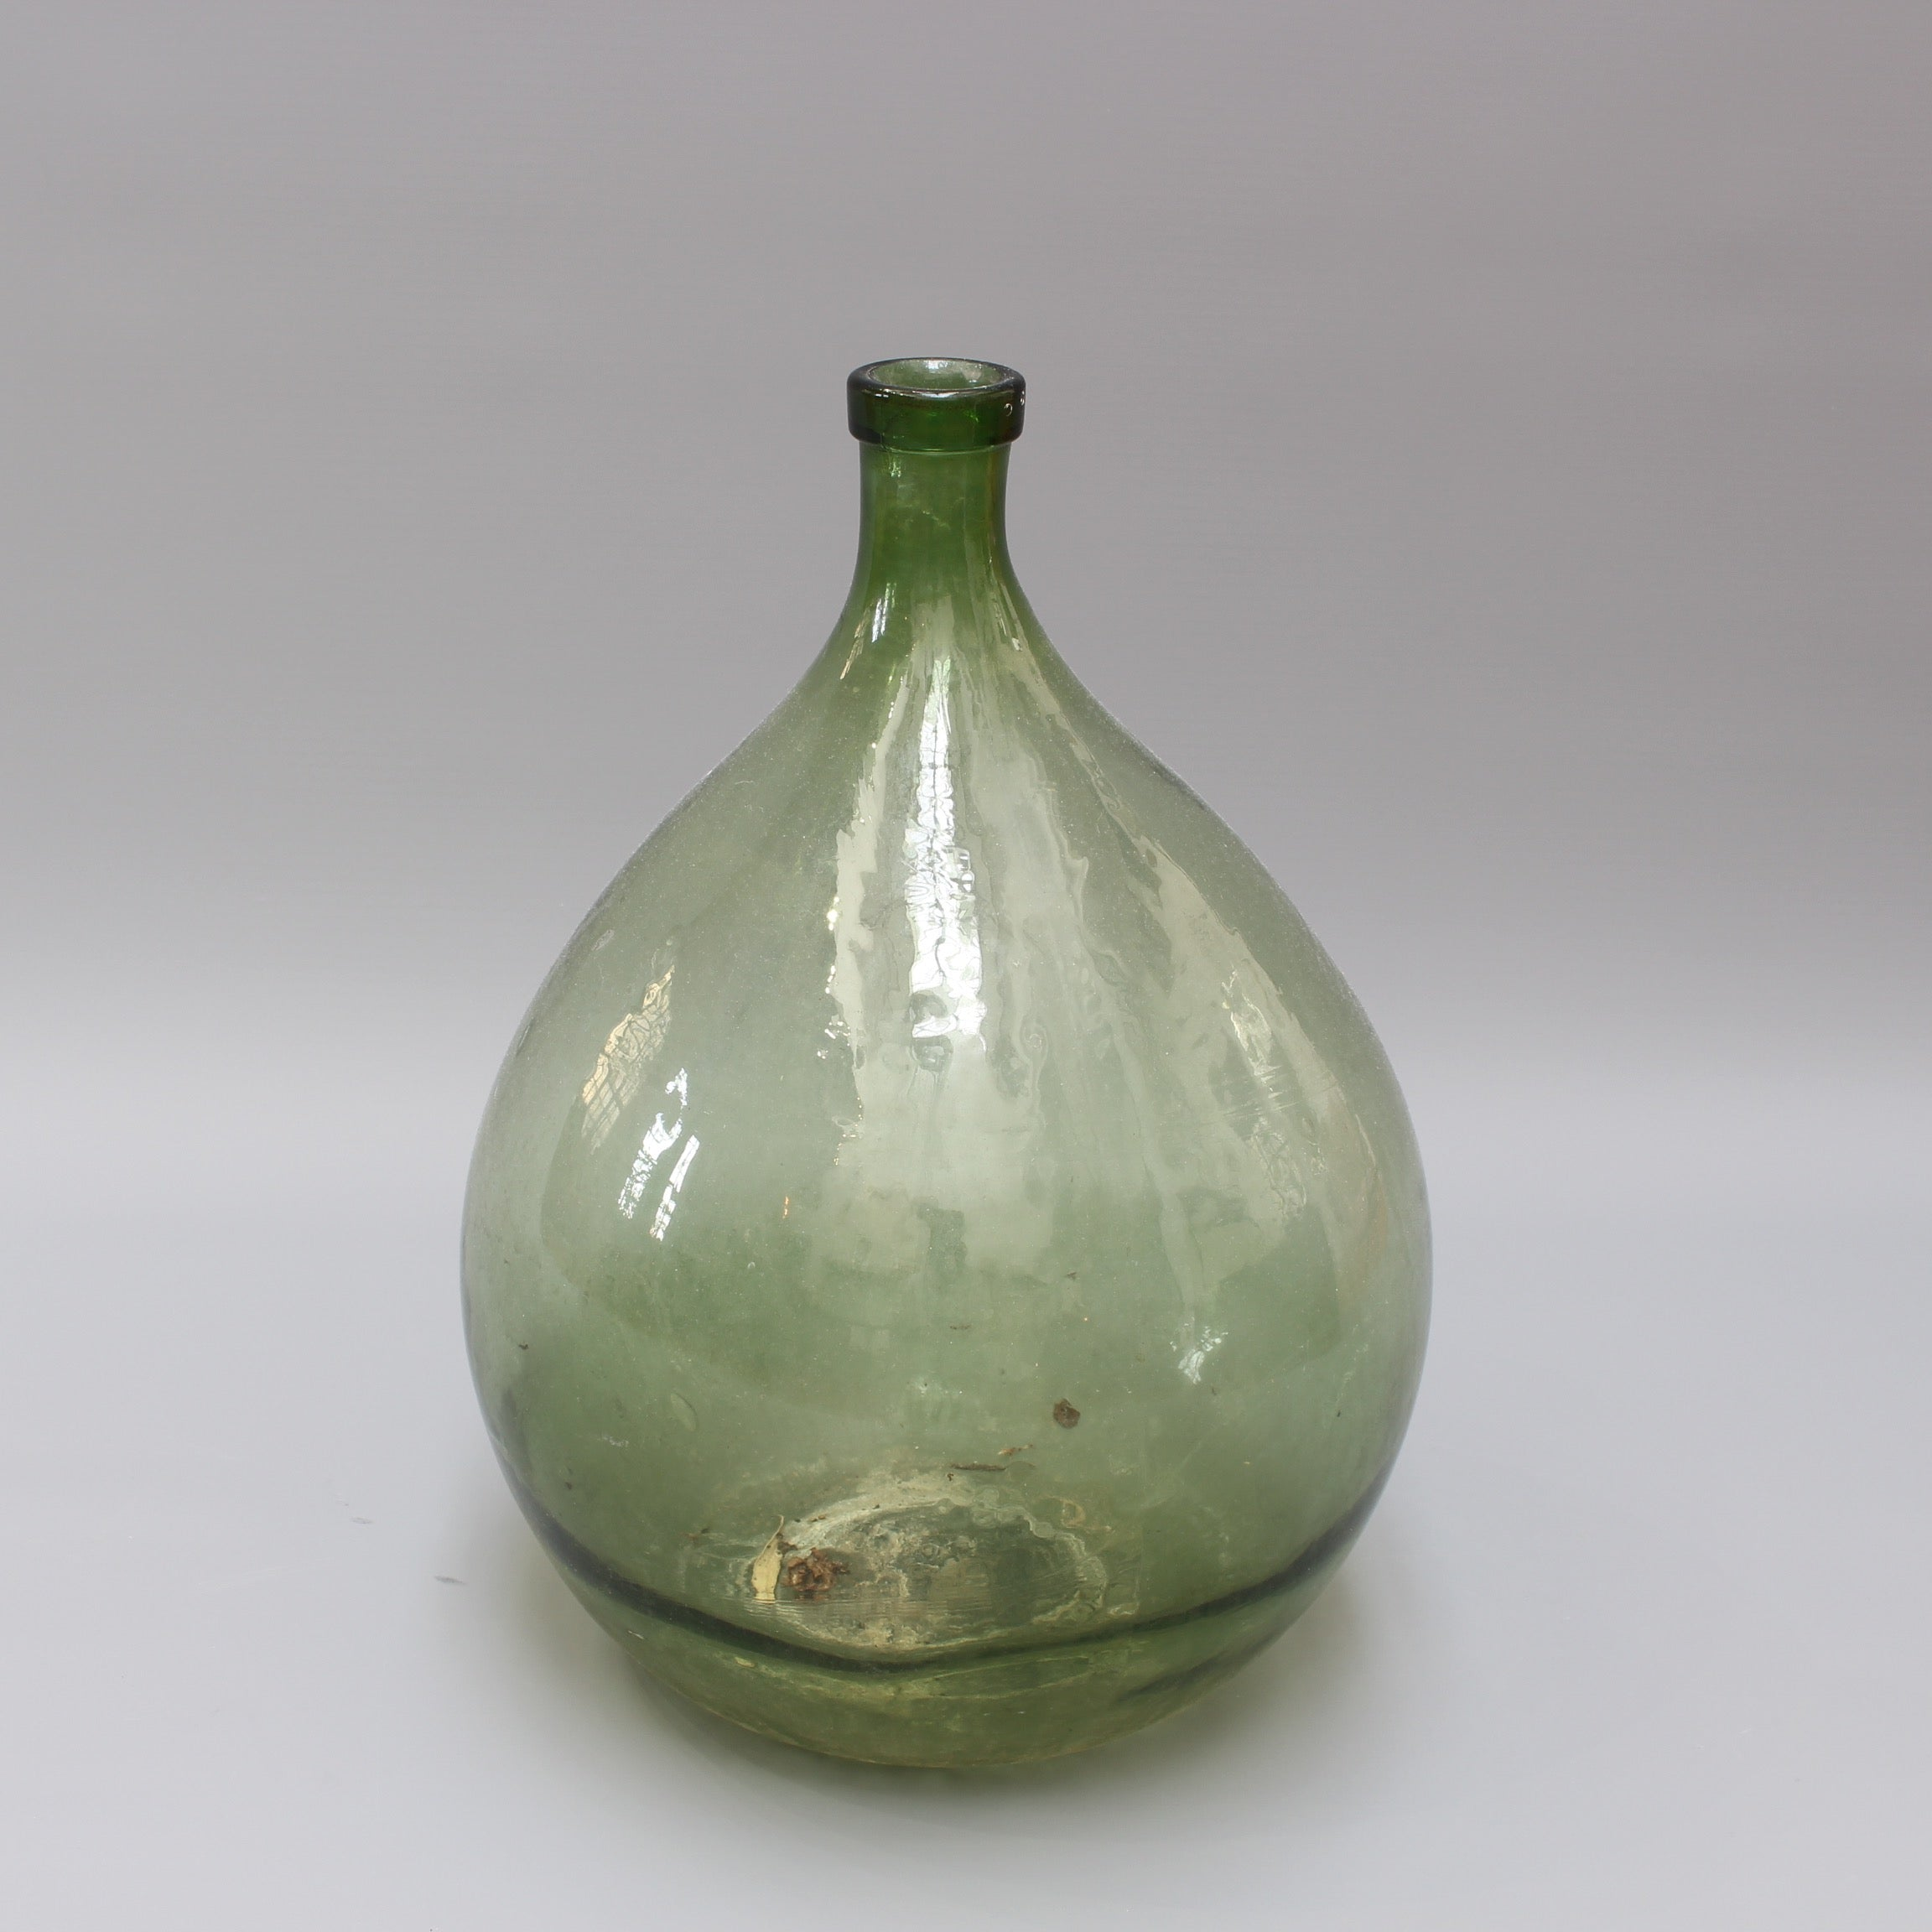 Vintage Large French Demijohn (Early 20th Century)